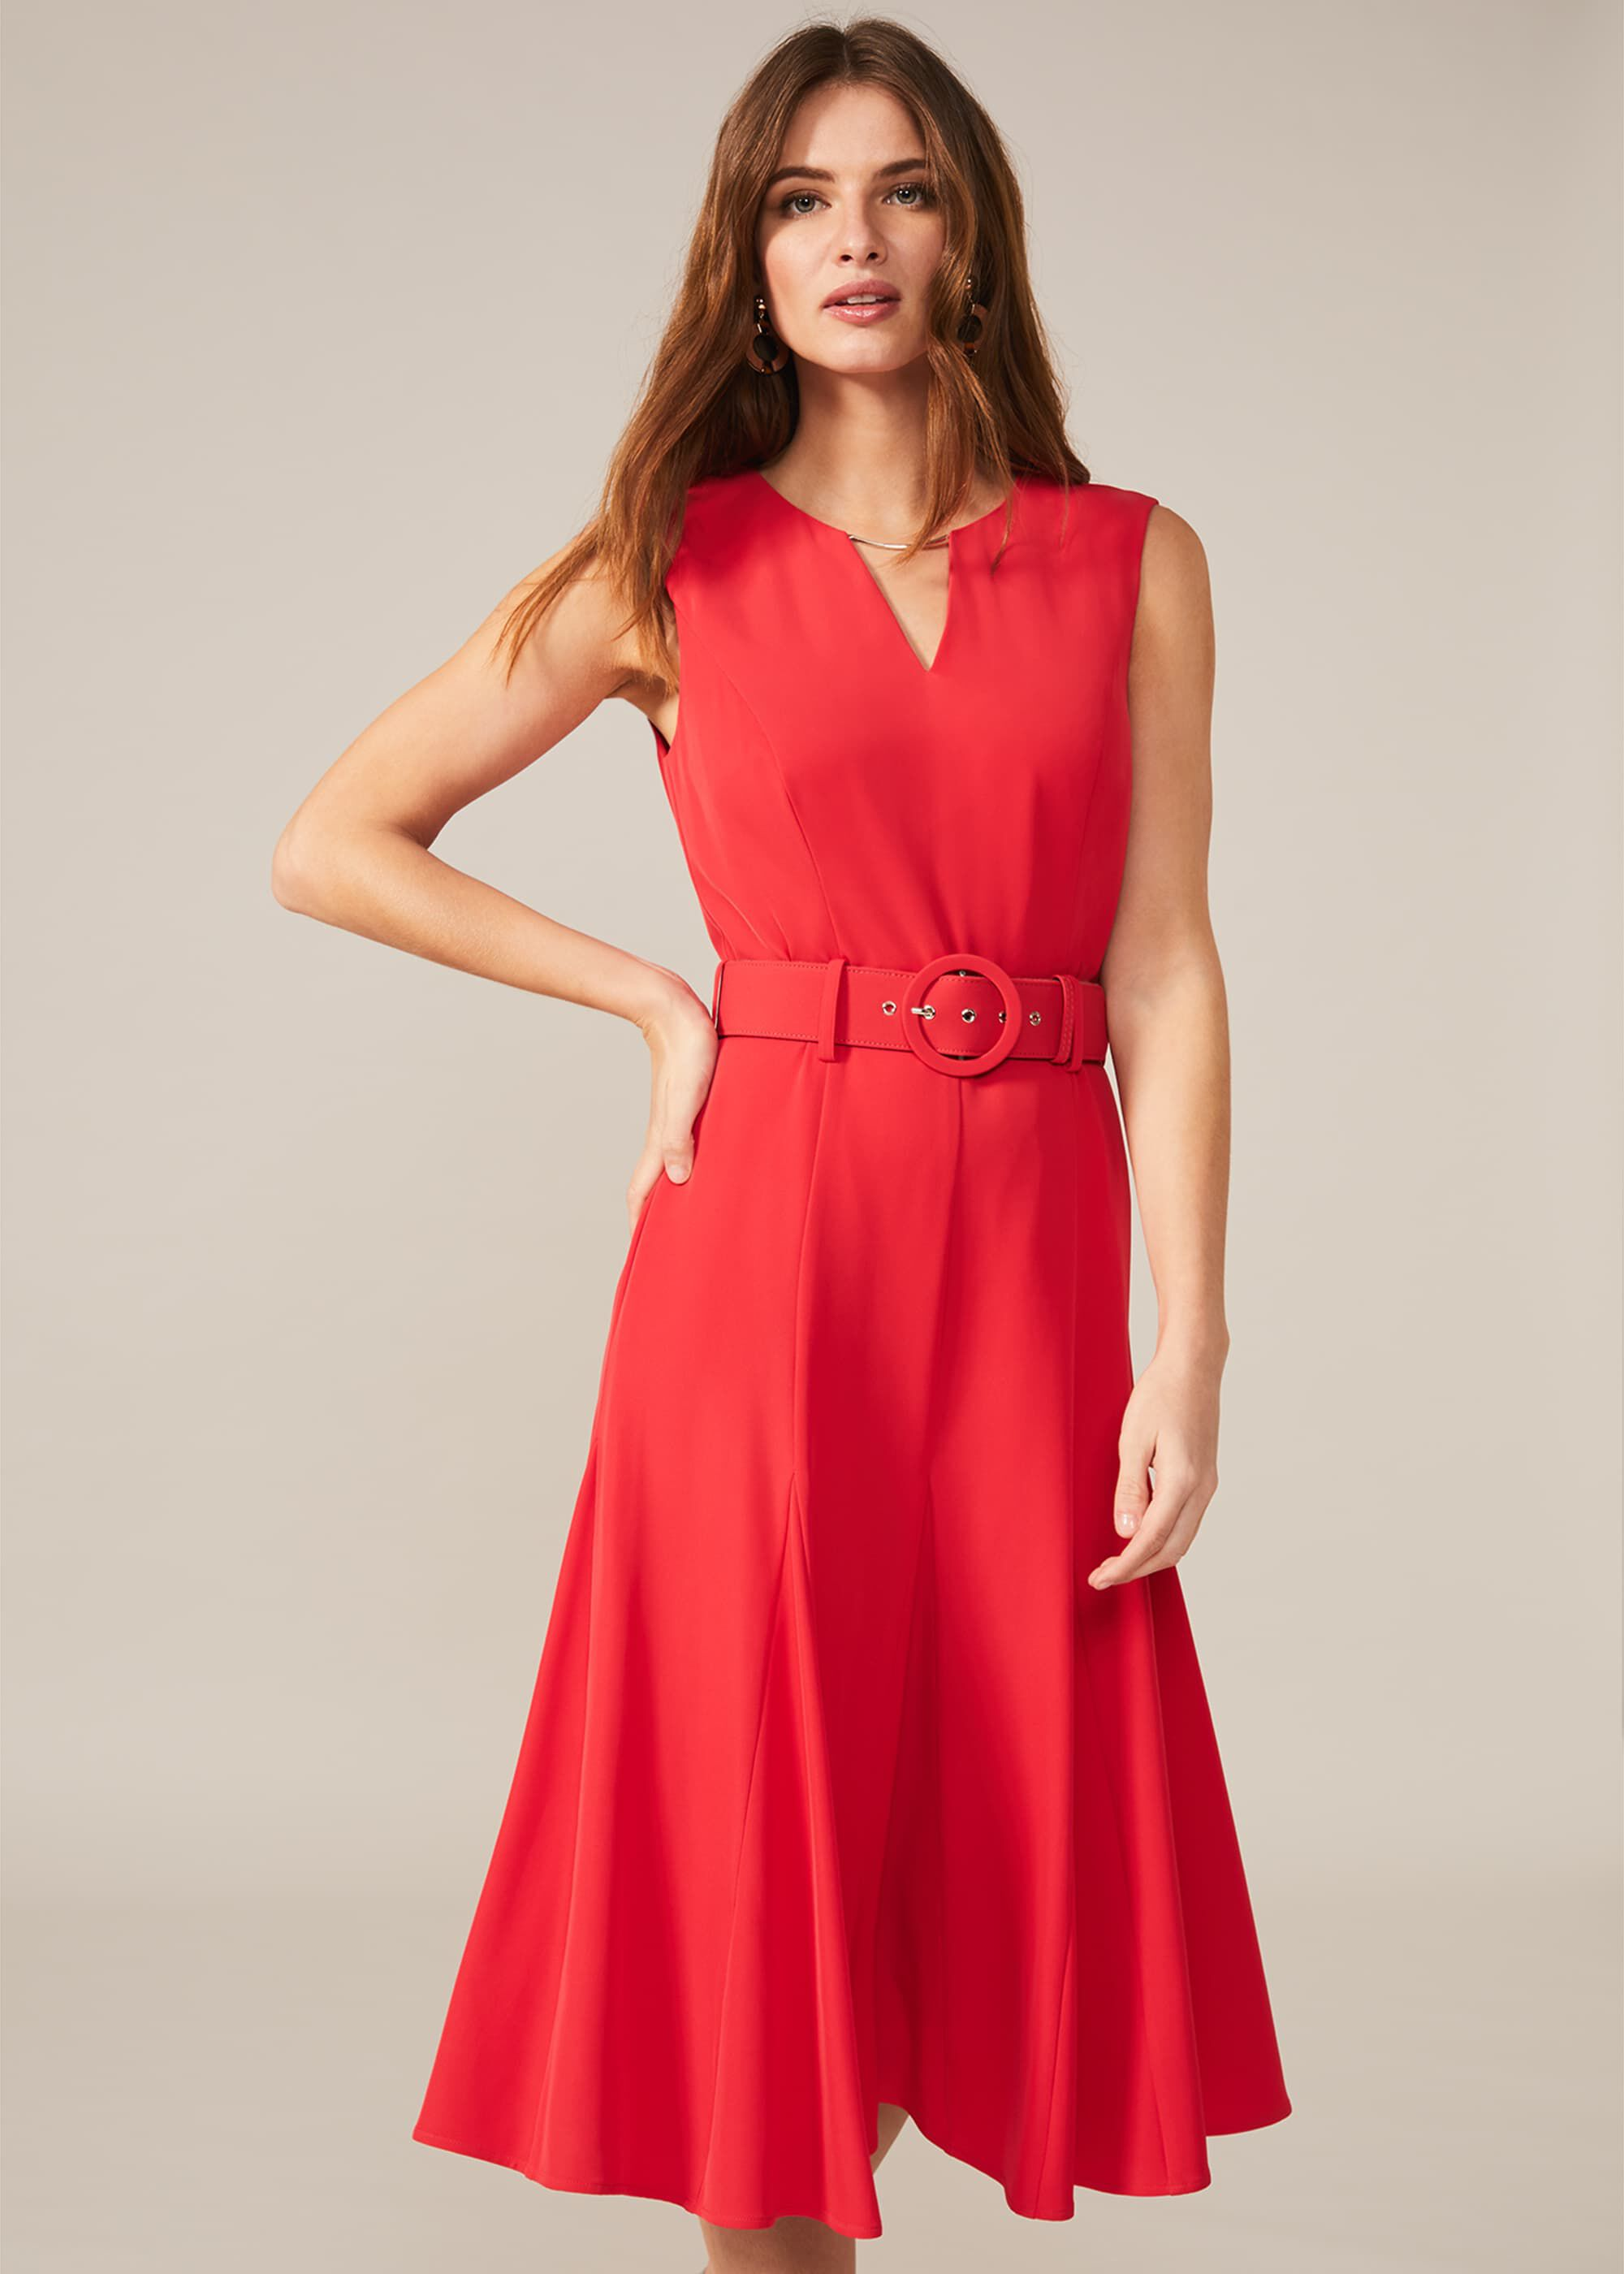 Phase Eight Jayne Belted Panelled Dress, Pink, Fit & Flare, Occasion Dress